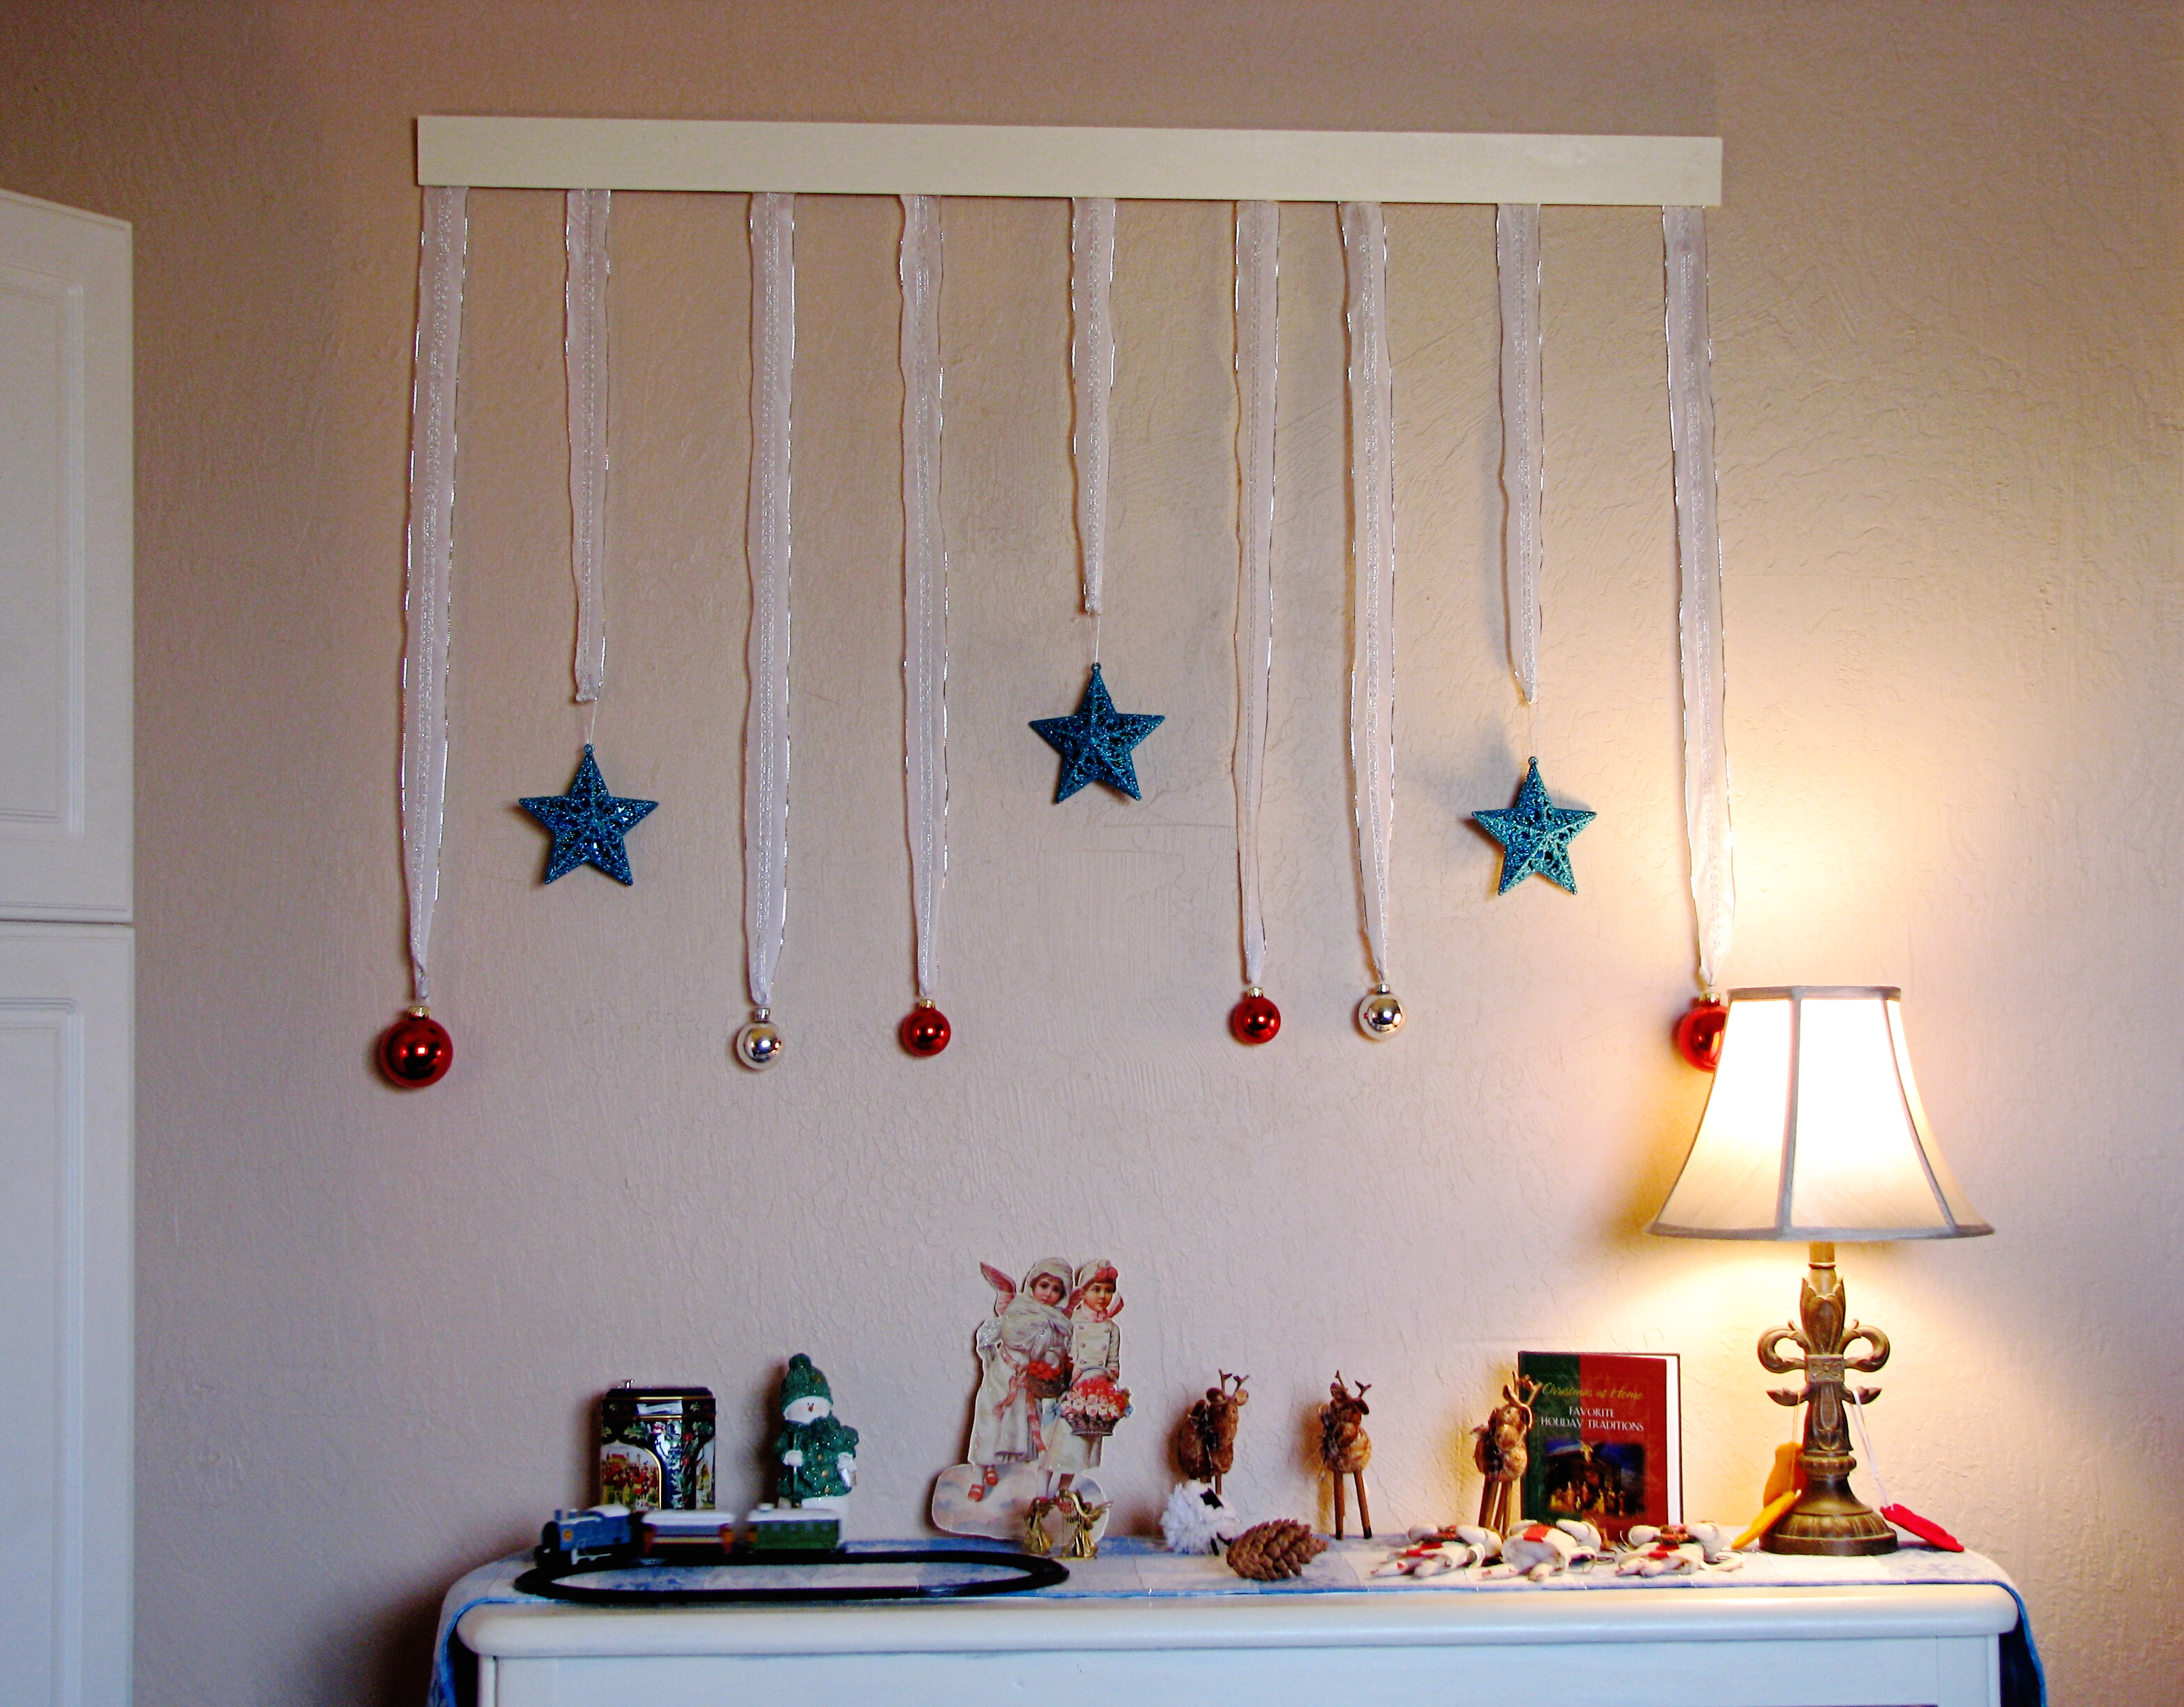 Christmas Wall Decor Images : Christmas wall decorations ideas for this year